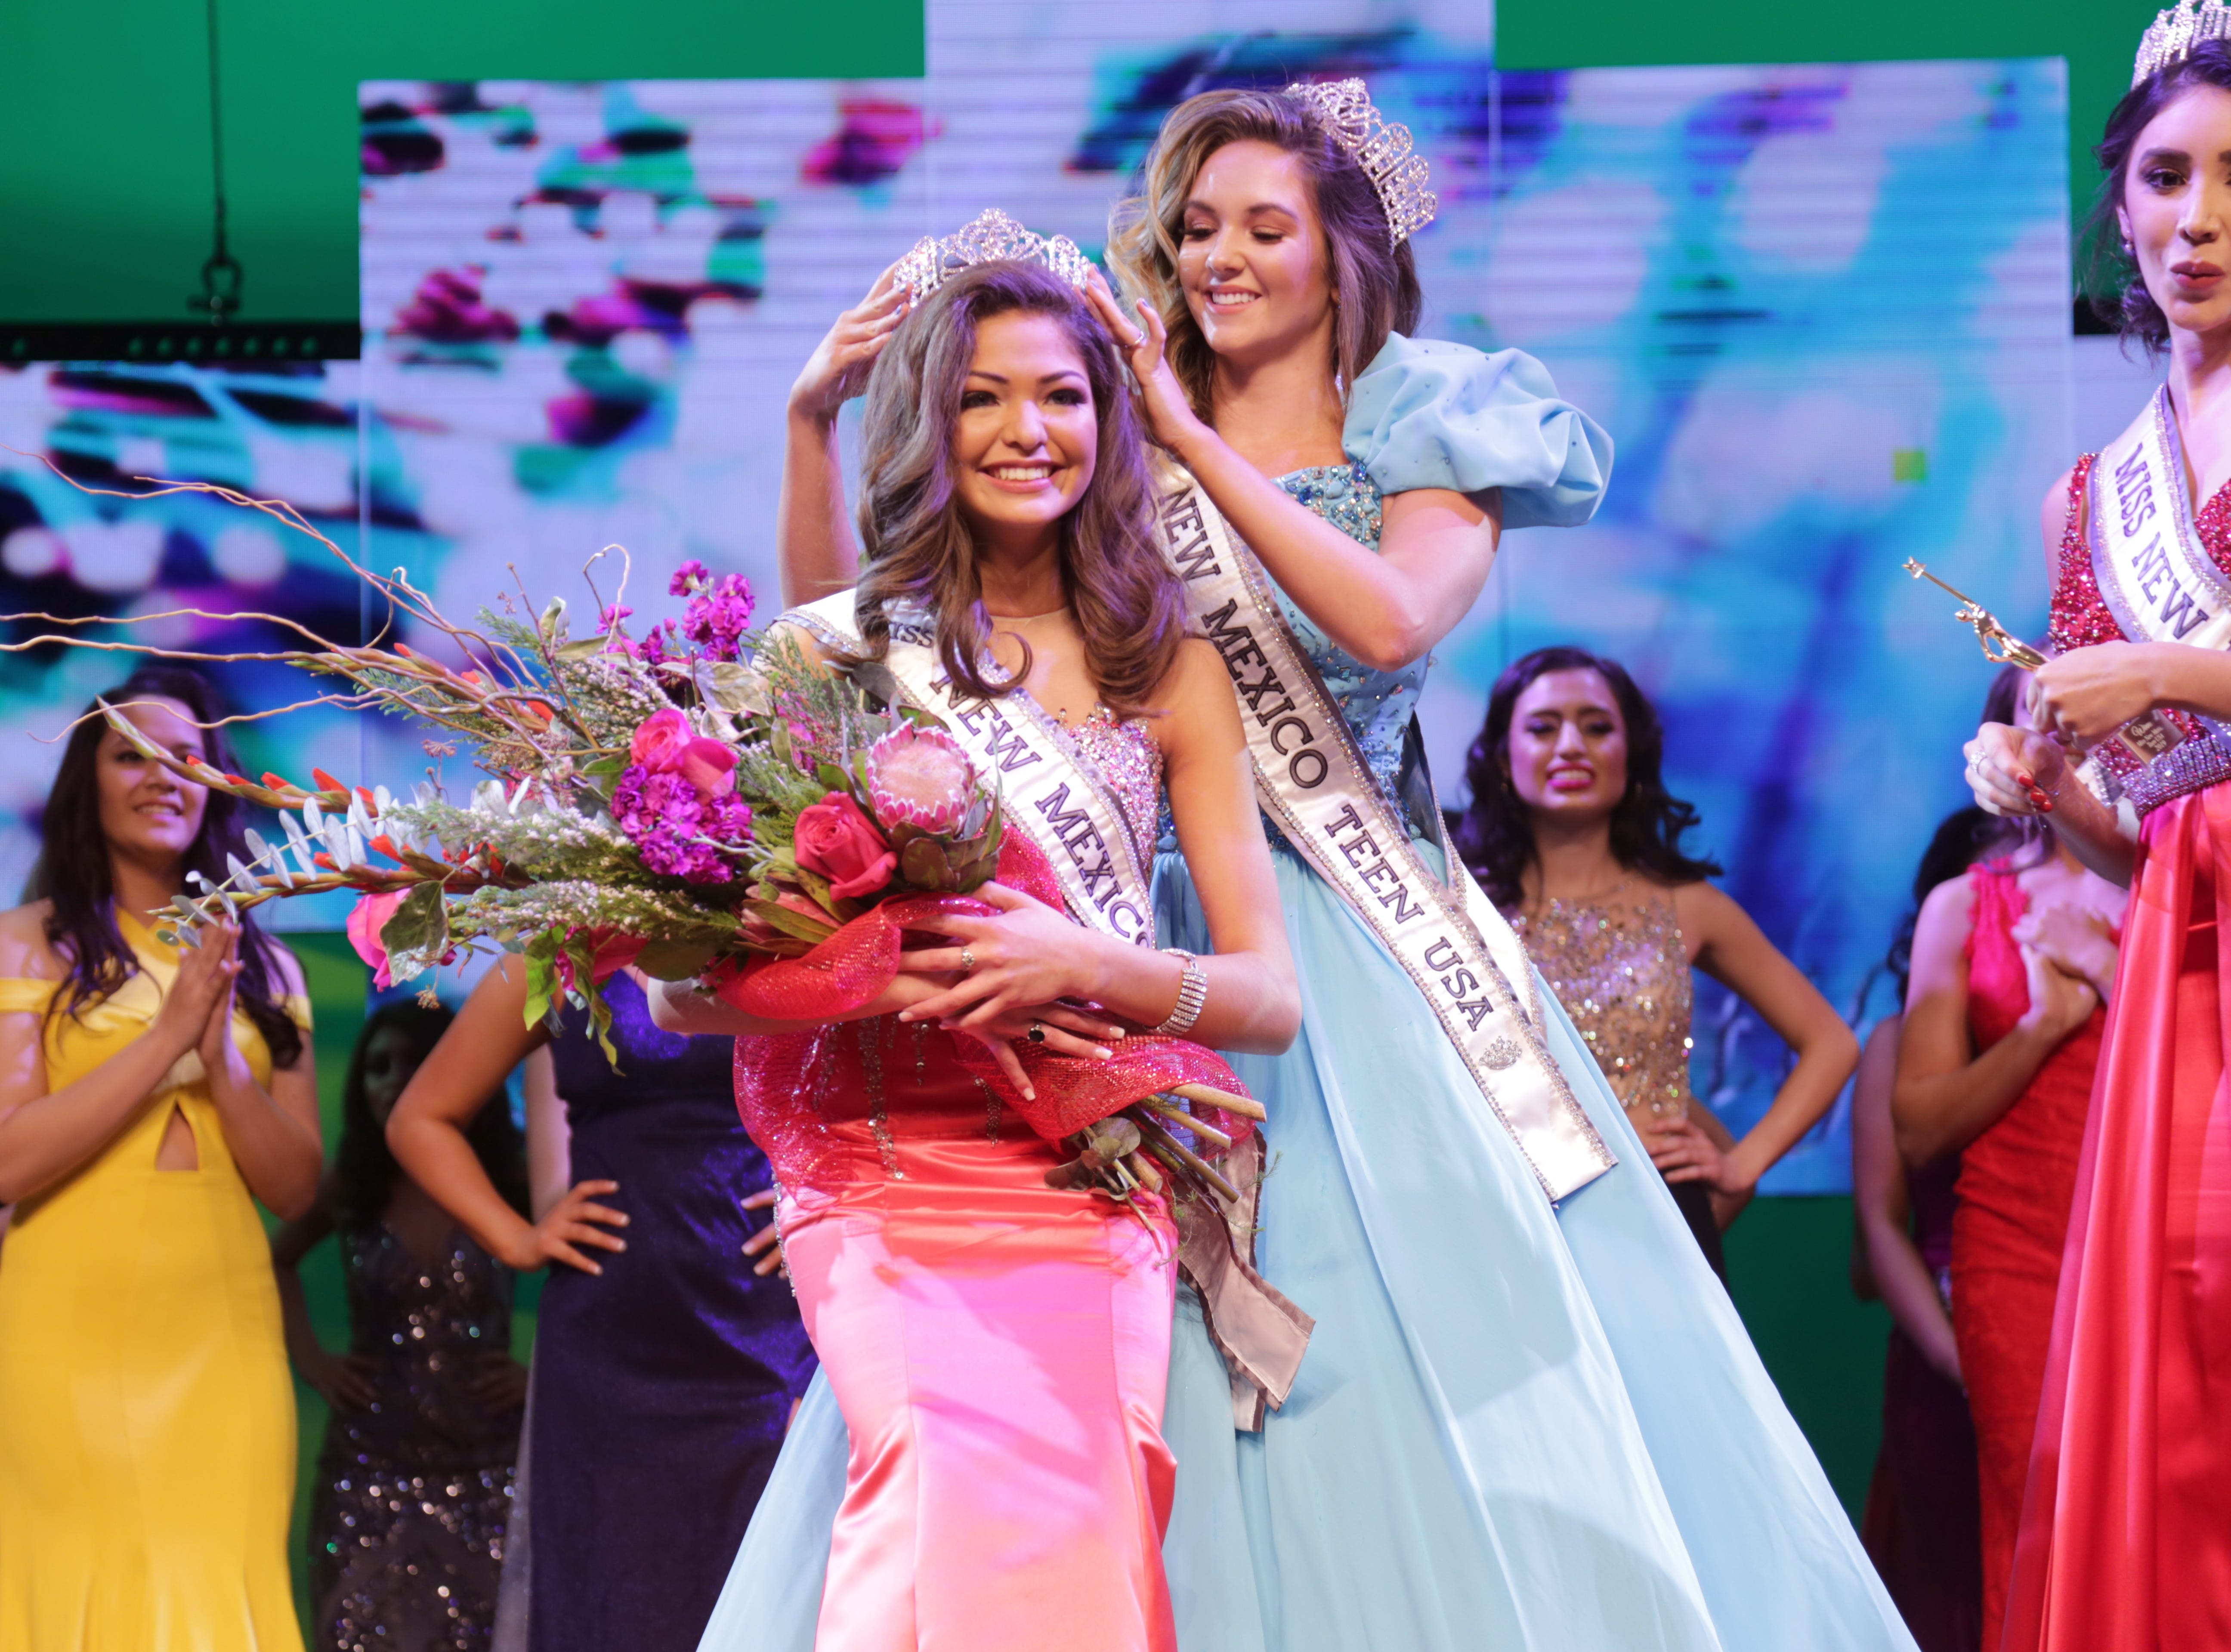 Angela Nanez, 14, getting crowned Miss New Mexico Teen USA 2019.